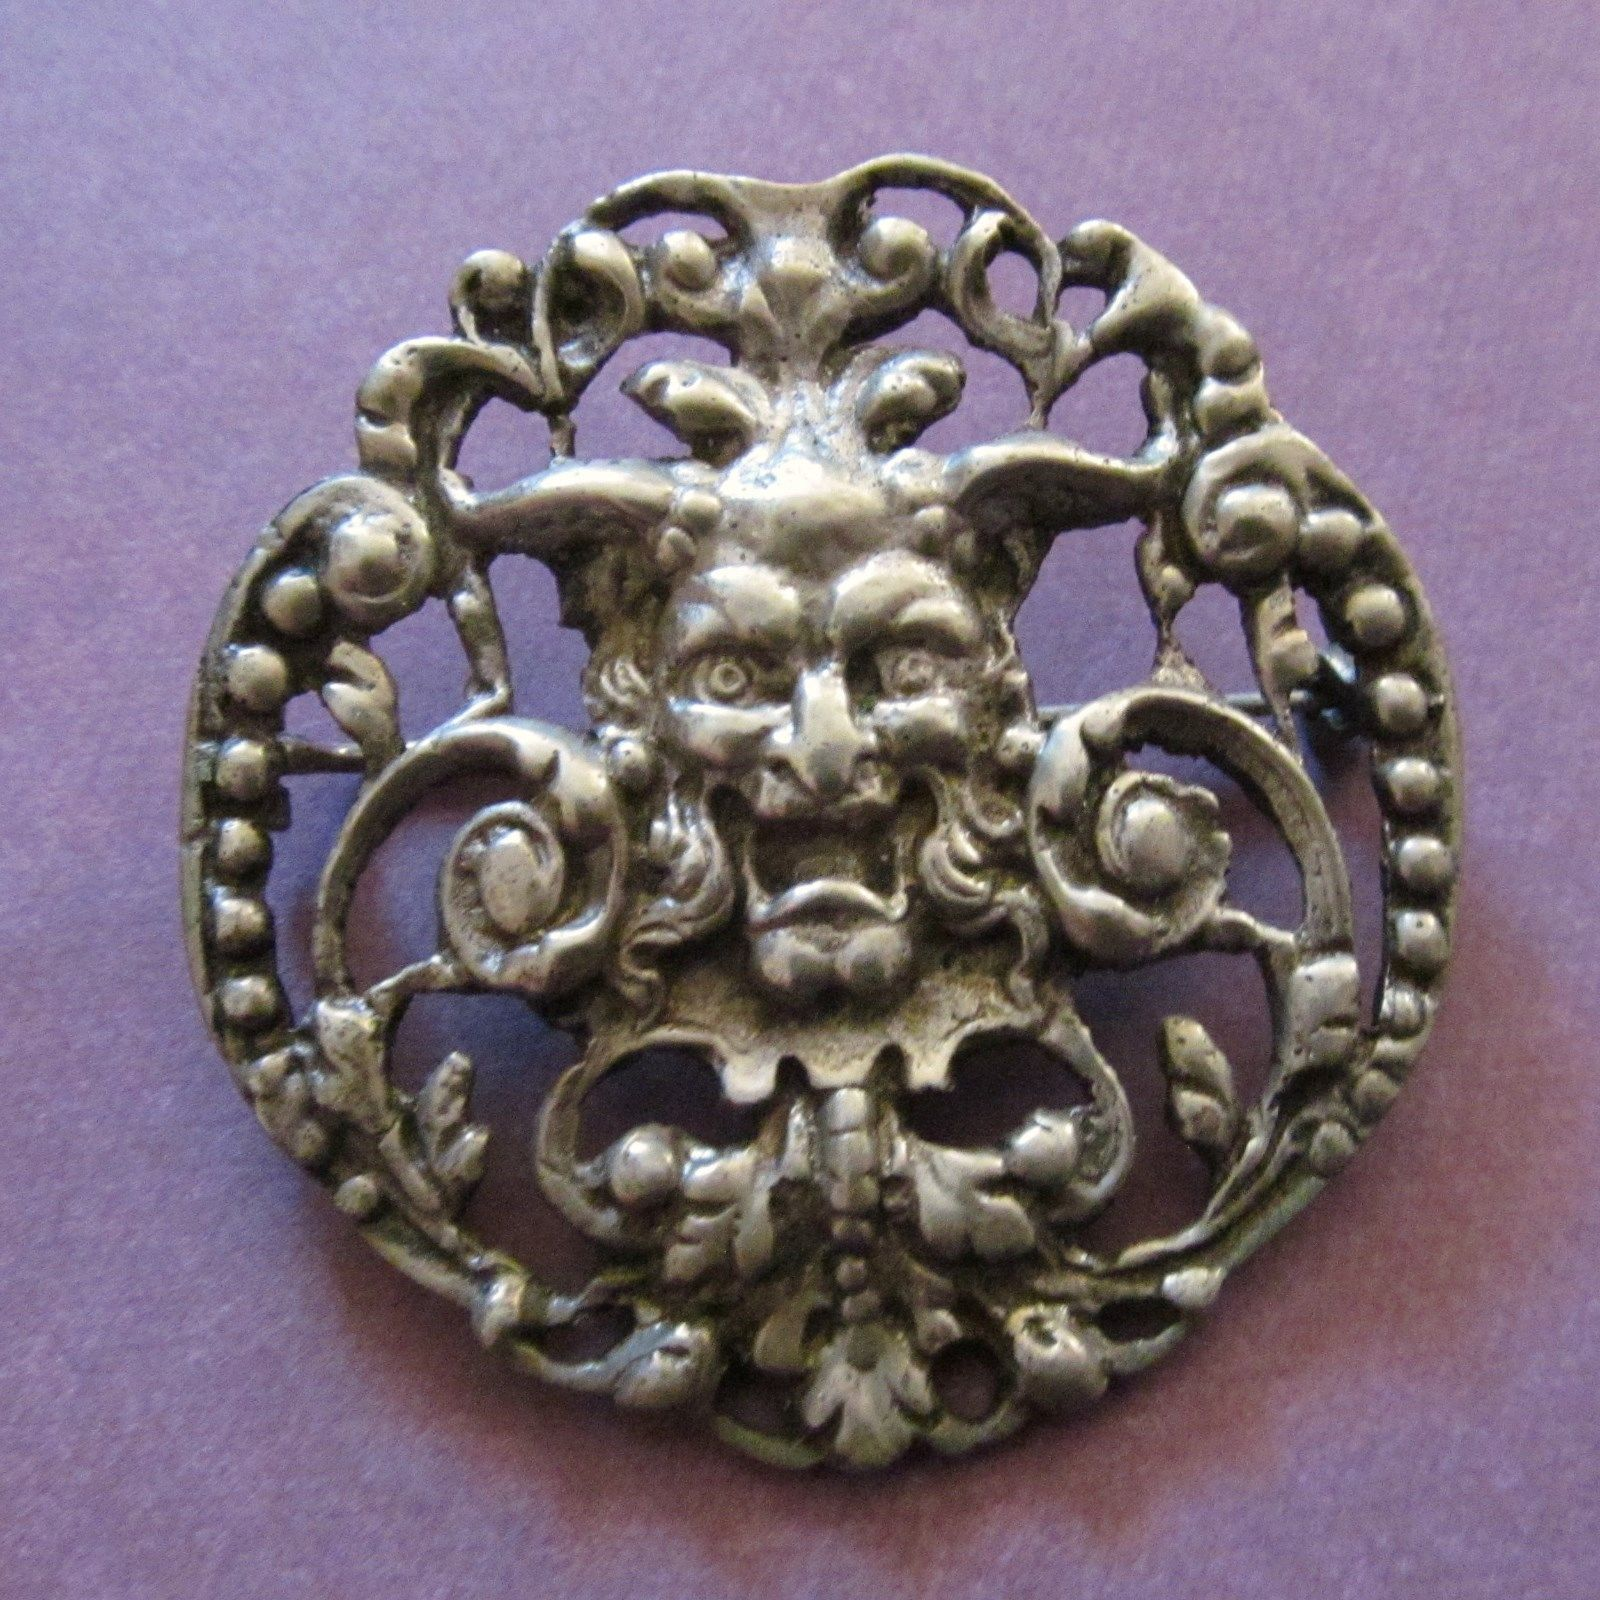 Antique 800 Silver Florentine Brooch by Peruzzi | BEJEWELED